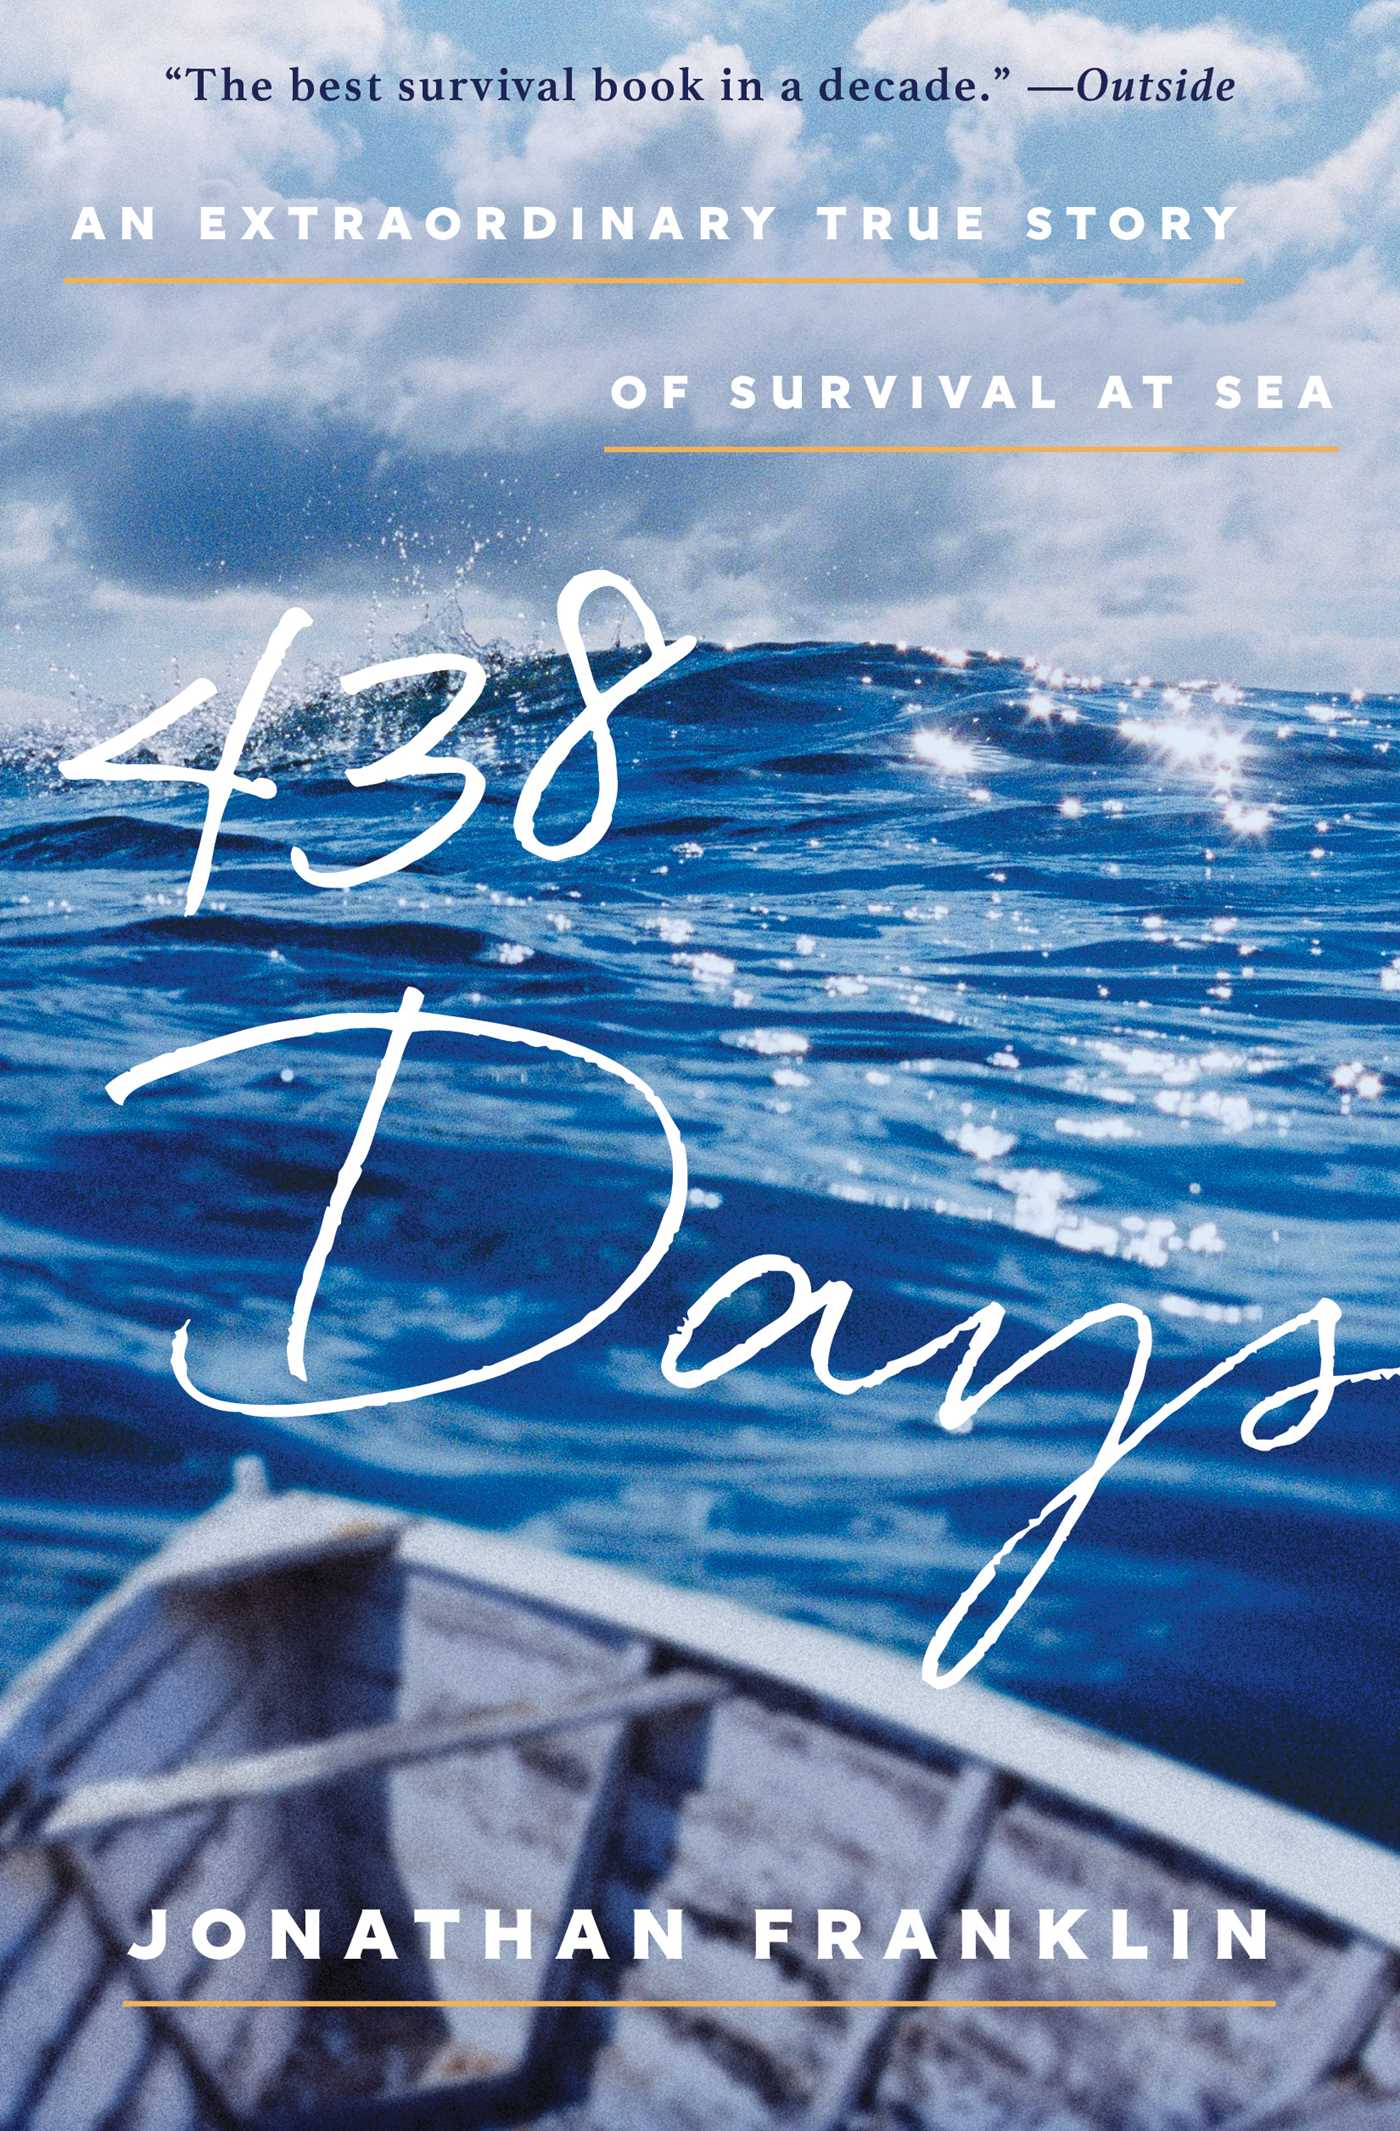 Book Cover Image (jpg): 438 Days